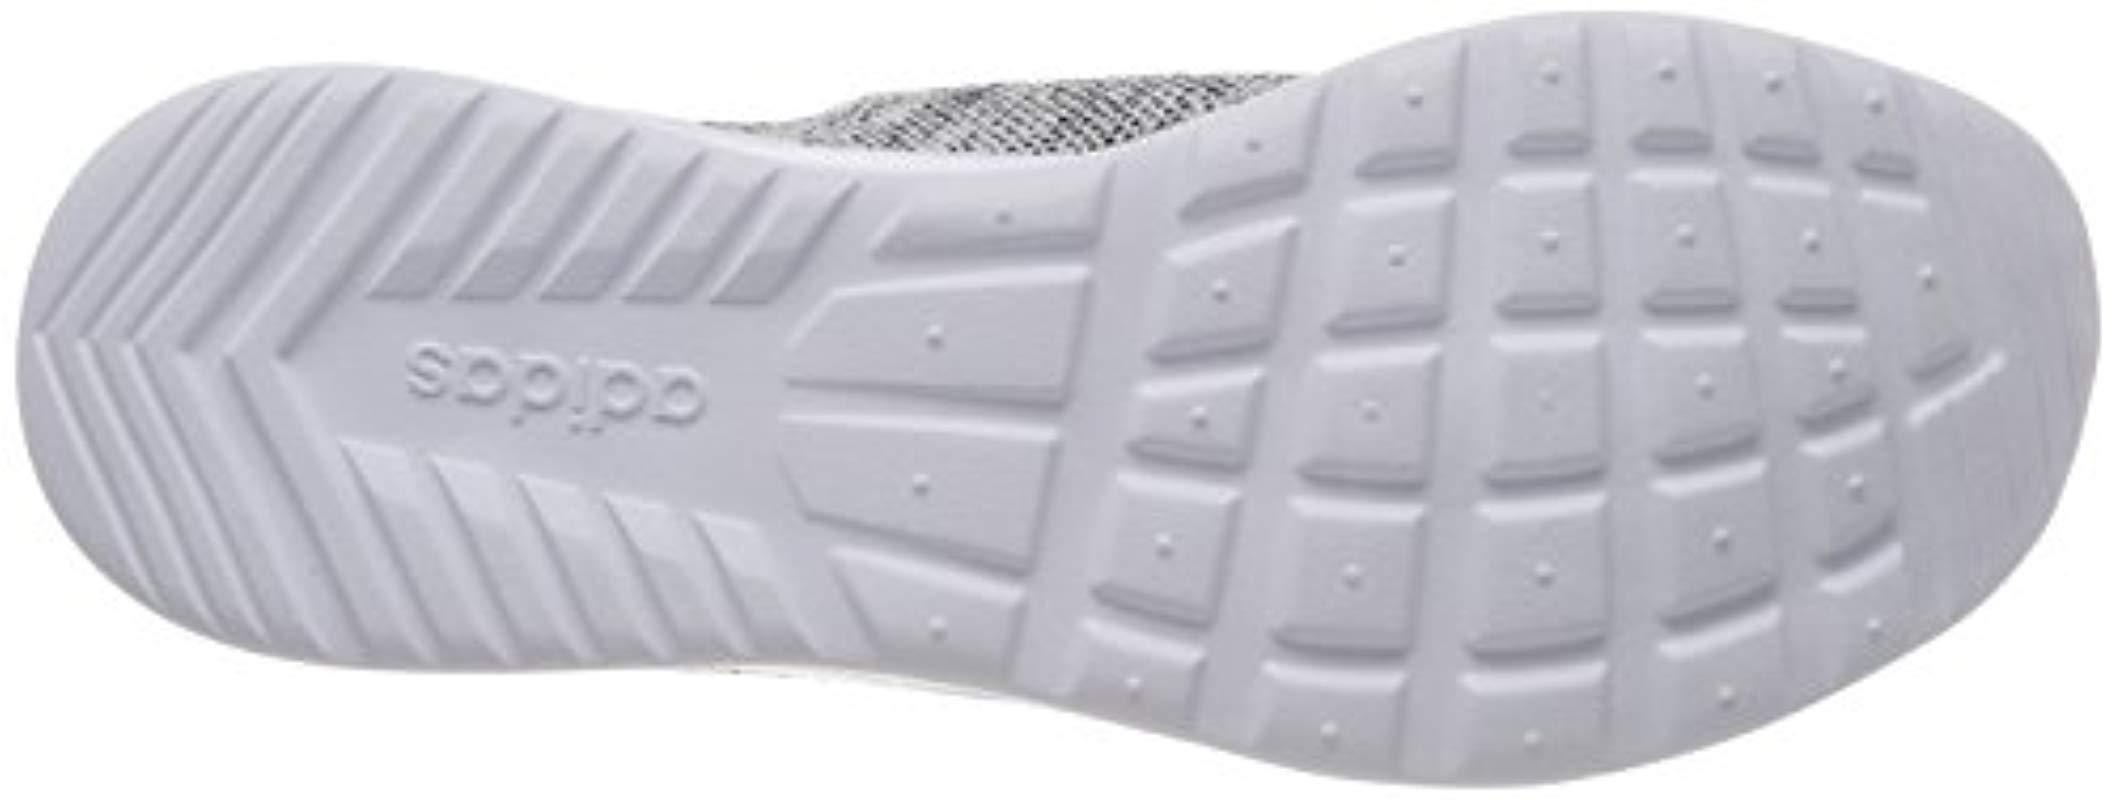 new product 618e6 21d49 Adidas - White Cloudfoam Pure Fitness Shoes - Lyst. View fullscreen